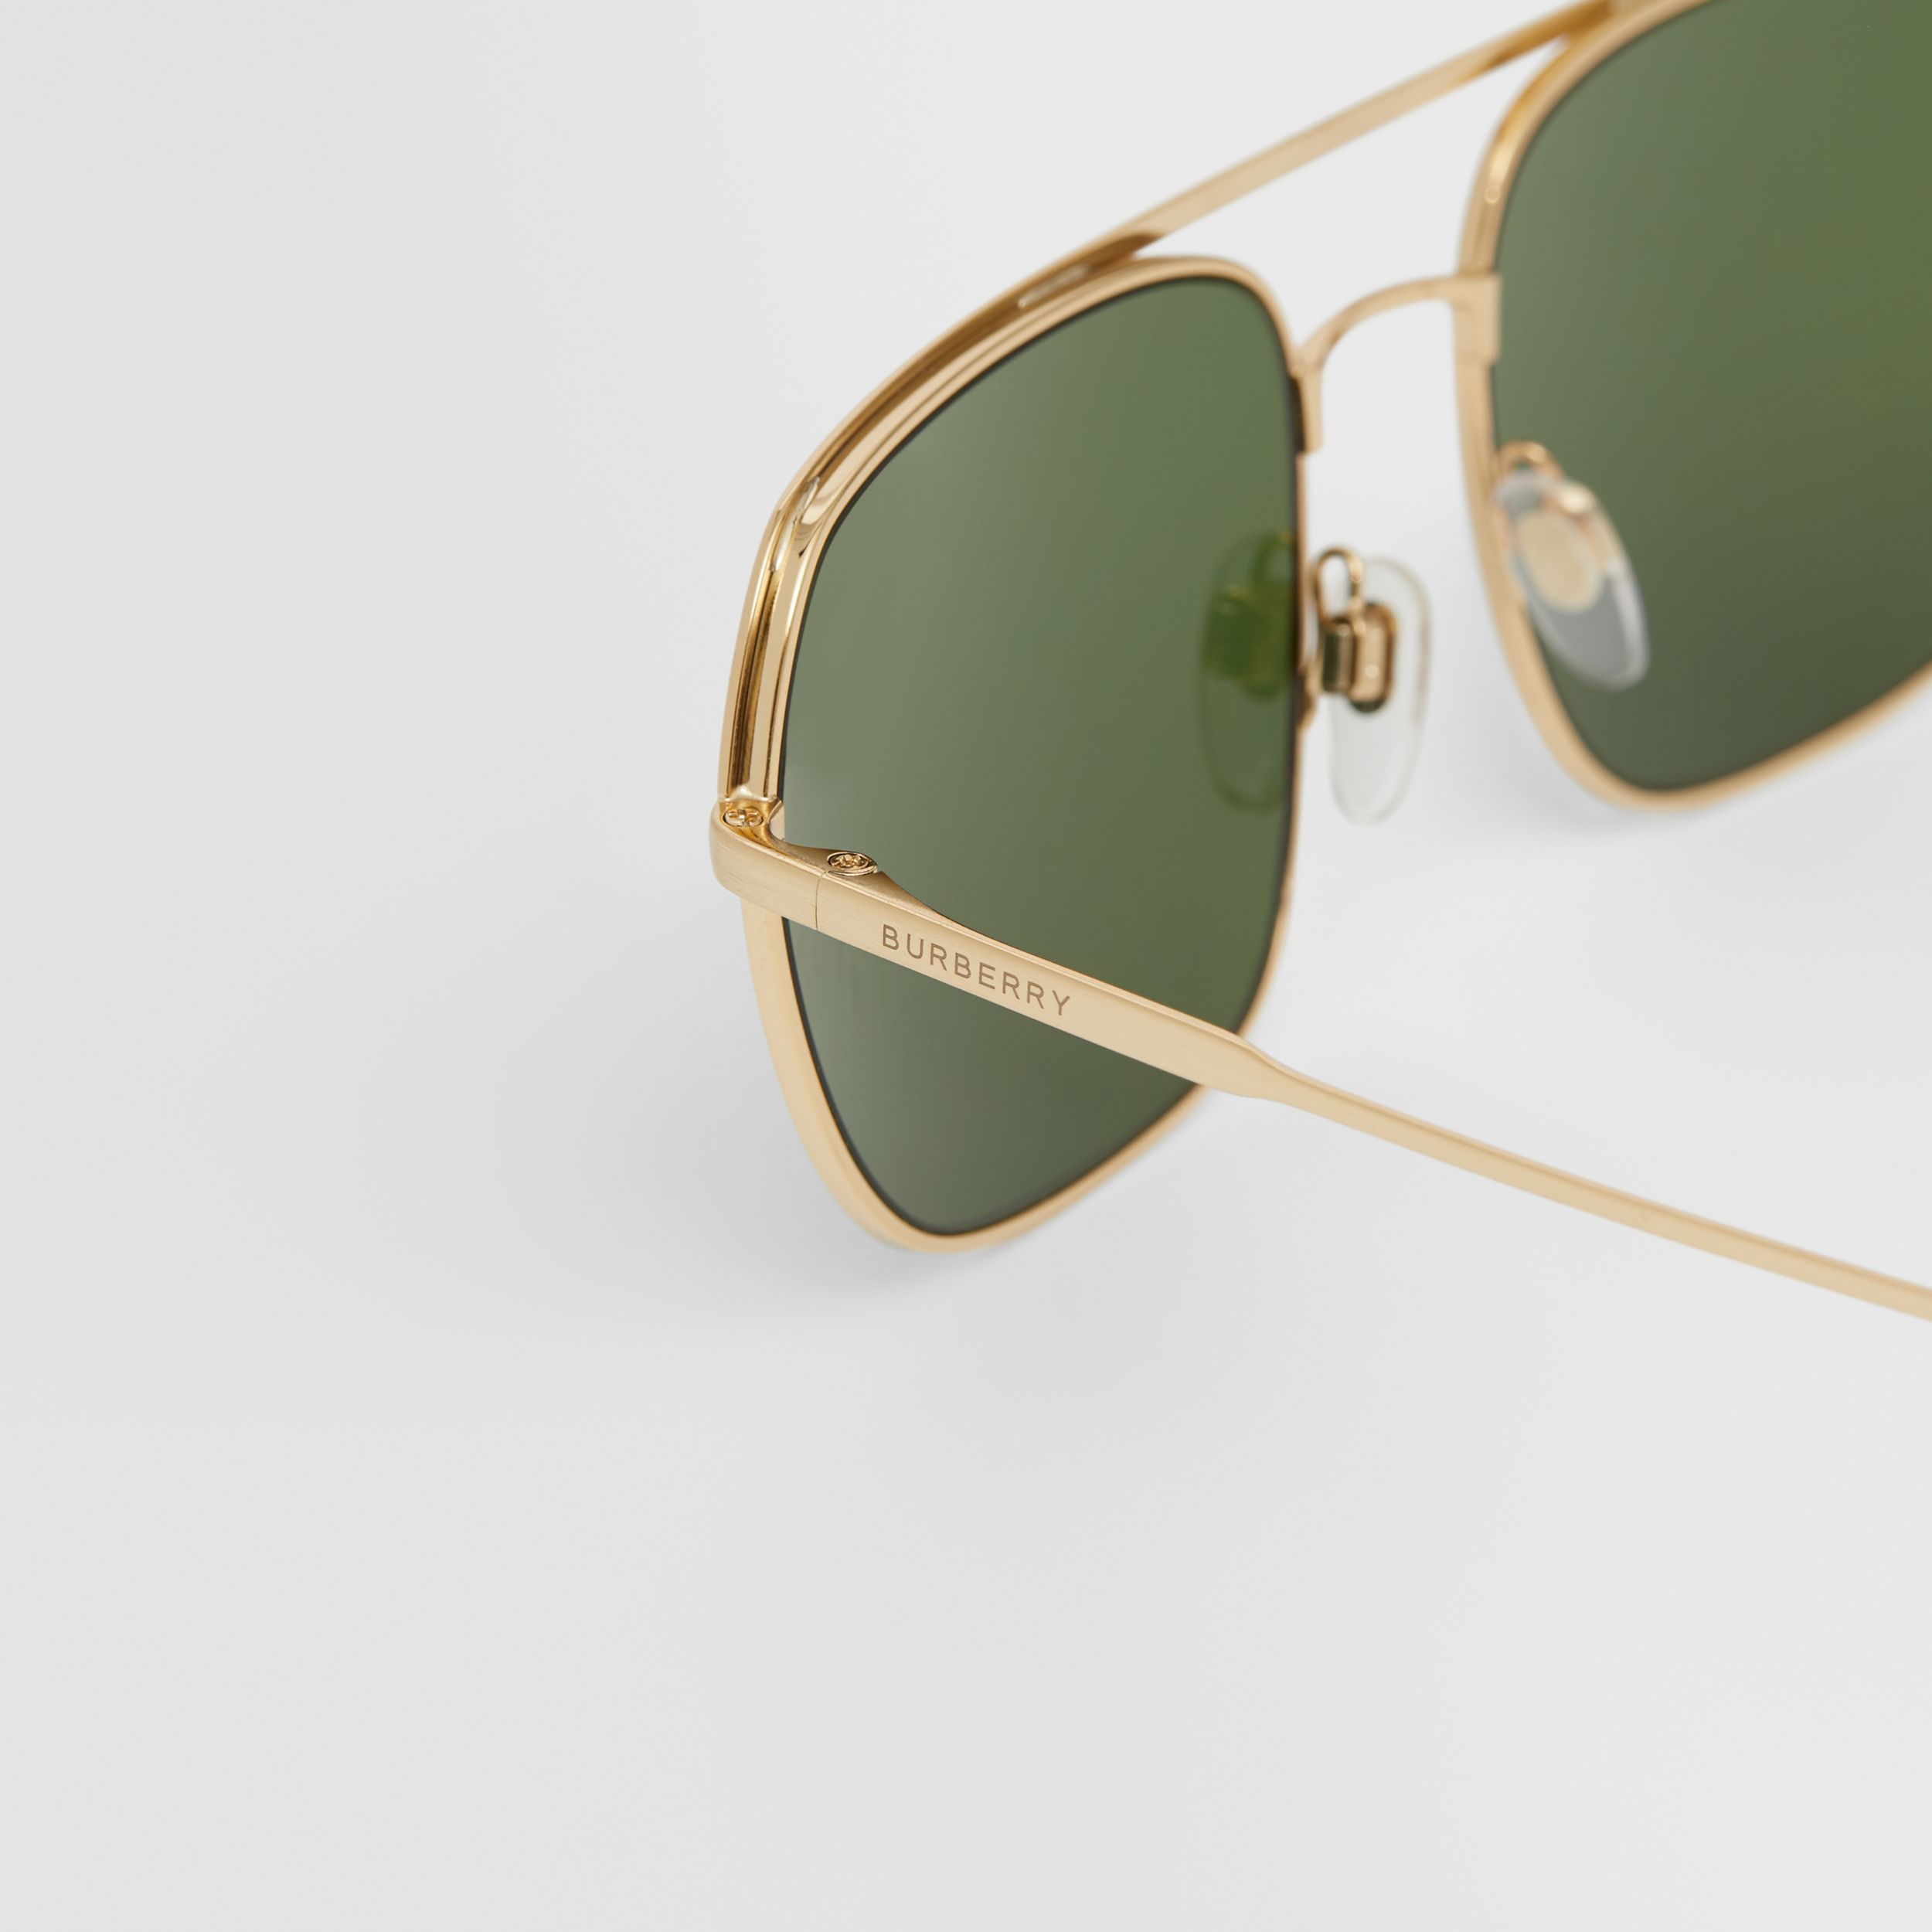 Square Pilot Sunglasses in Vintage Brushed Gold - Men | Burberry Australia - 2